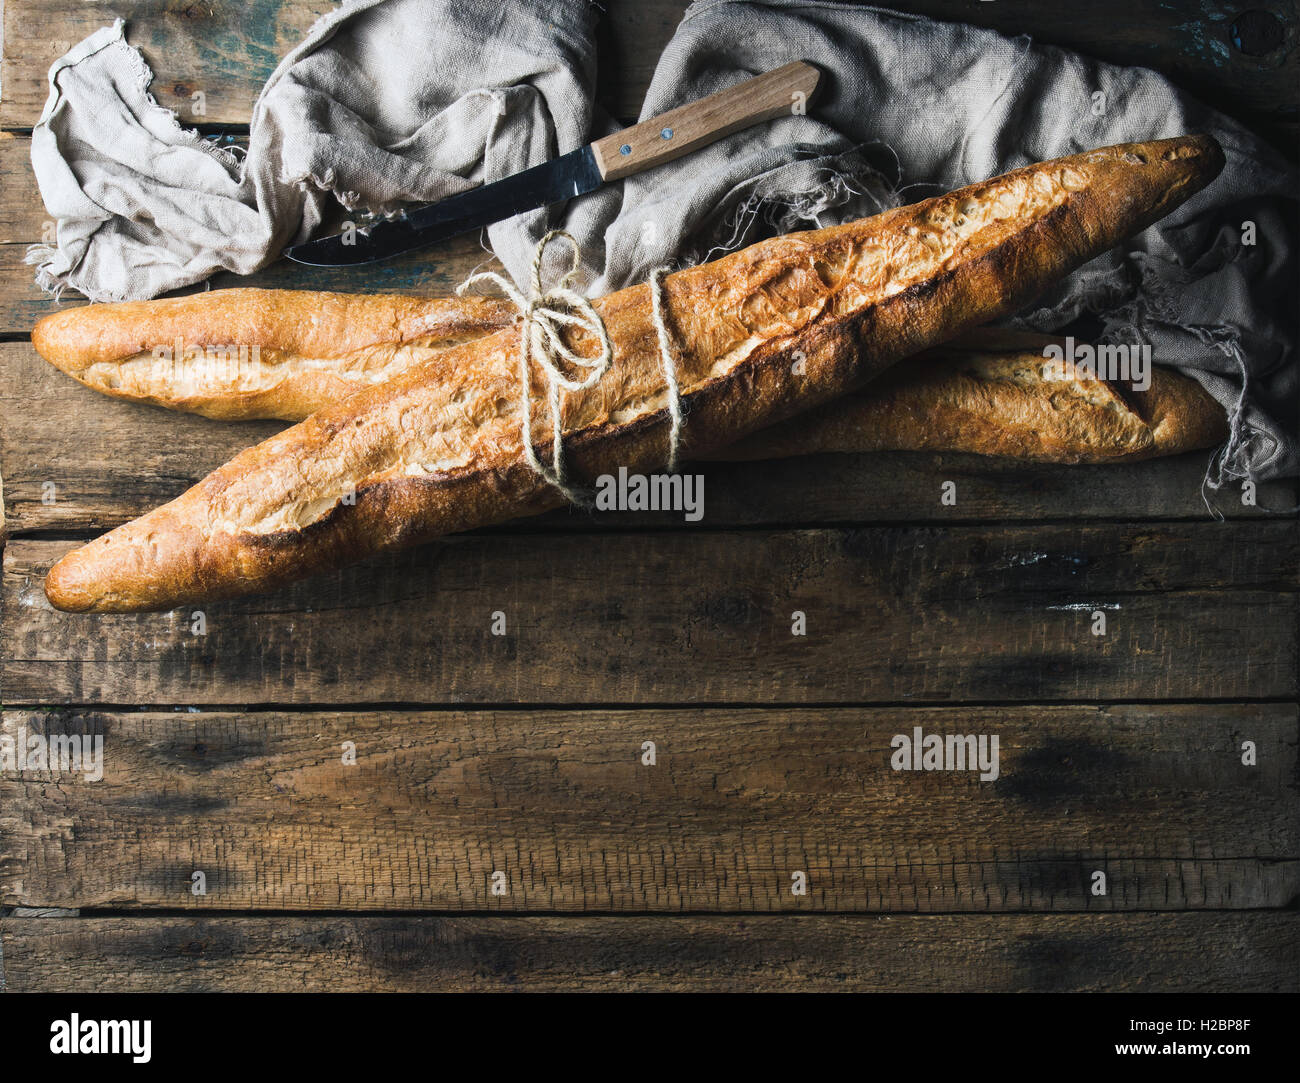 French baguettes on rough rustic wooden background - Stock Image